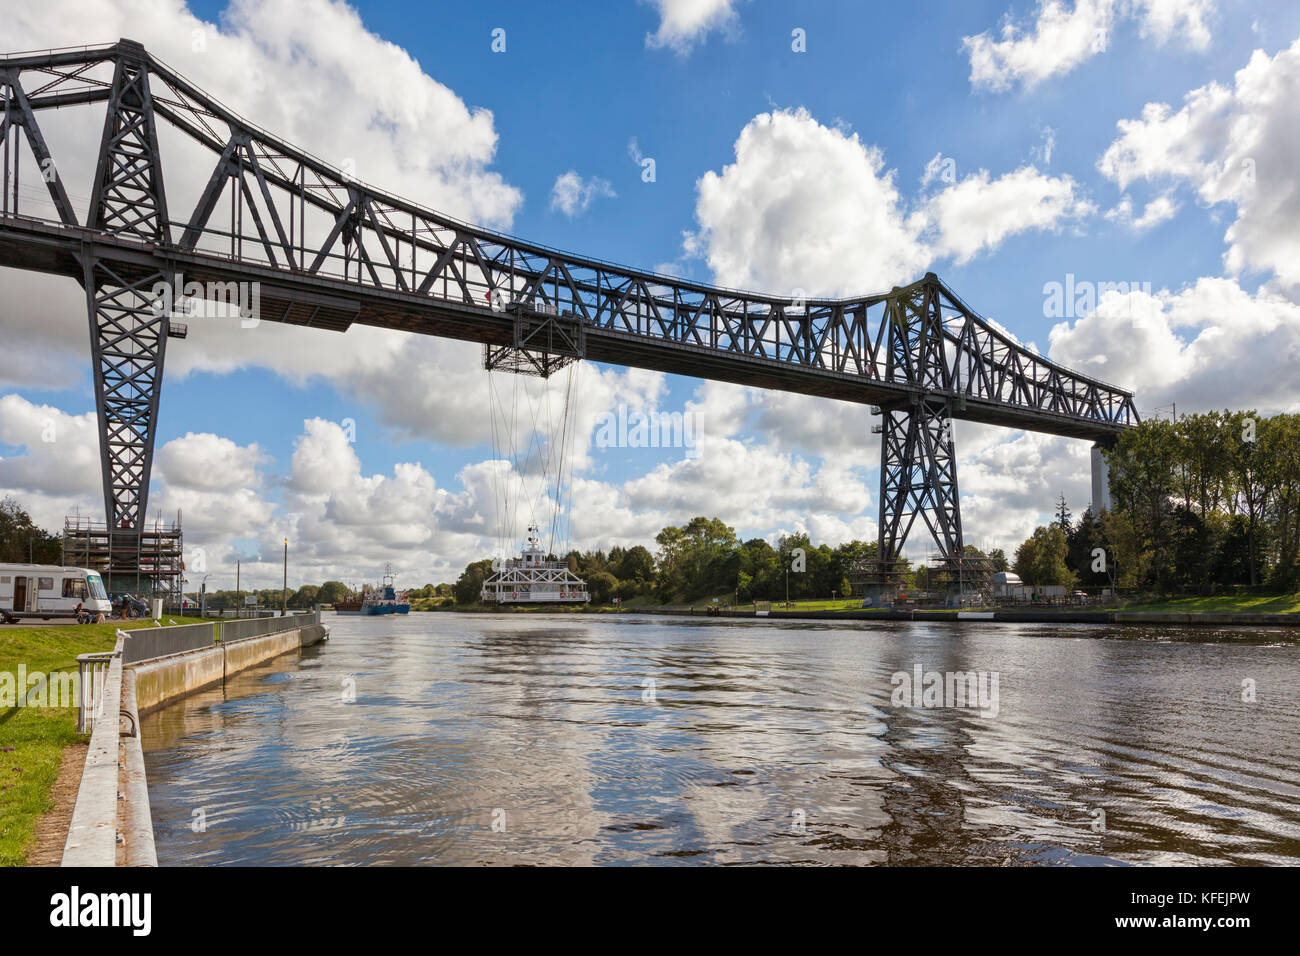 Rendsburg High Bridge with the transporter bridge crossing Kiel Canal - Stock Image